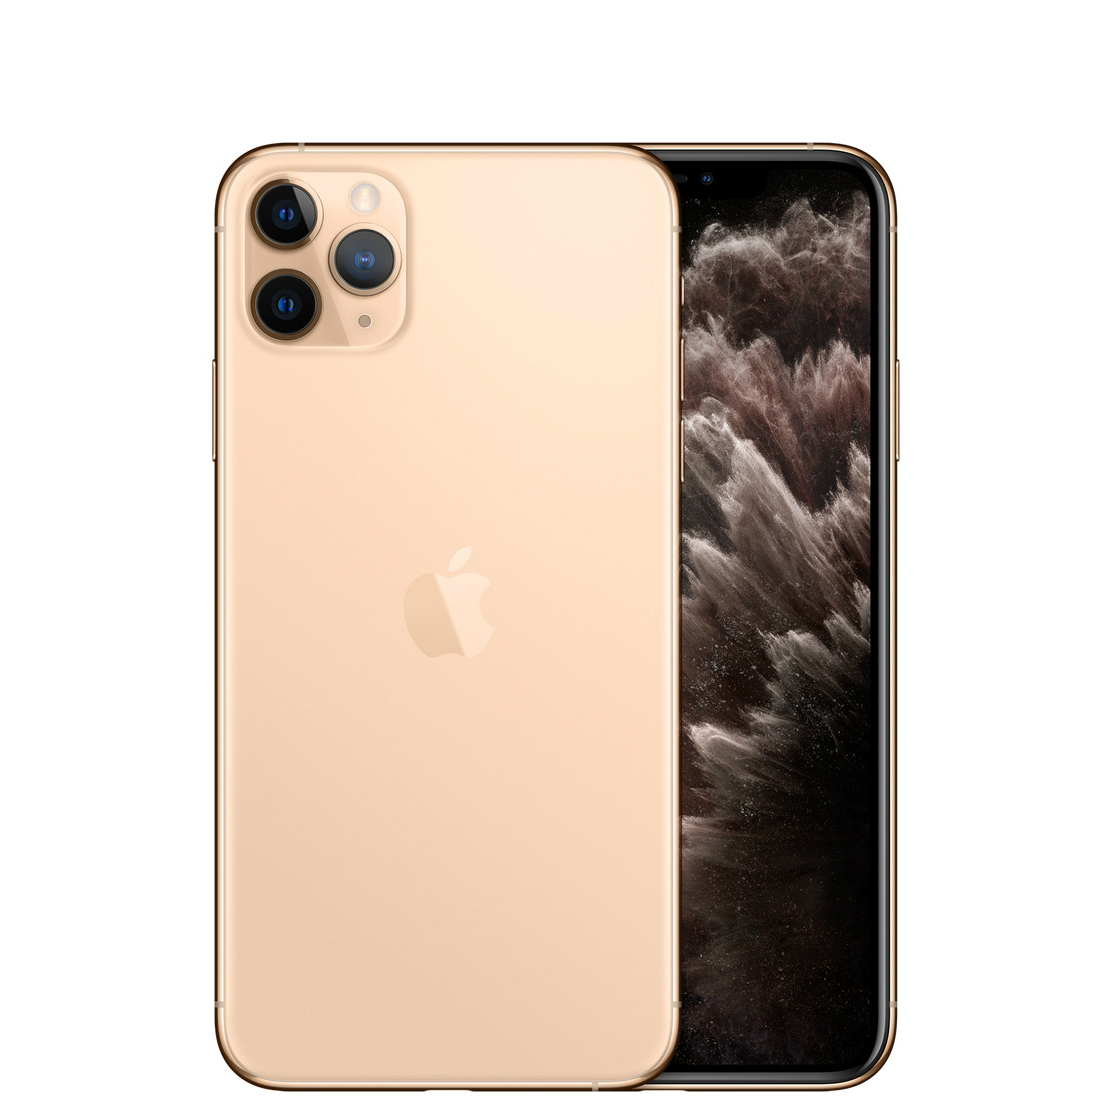 Image of Apple iPhone 11 Pro Max 64GB A2220 Dual Sim - Gold